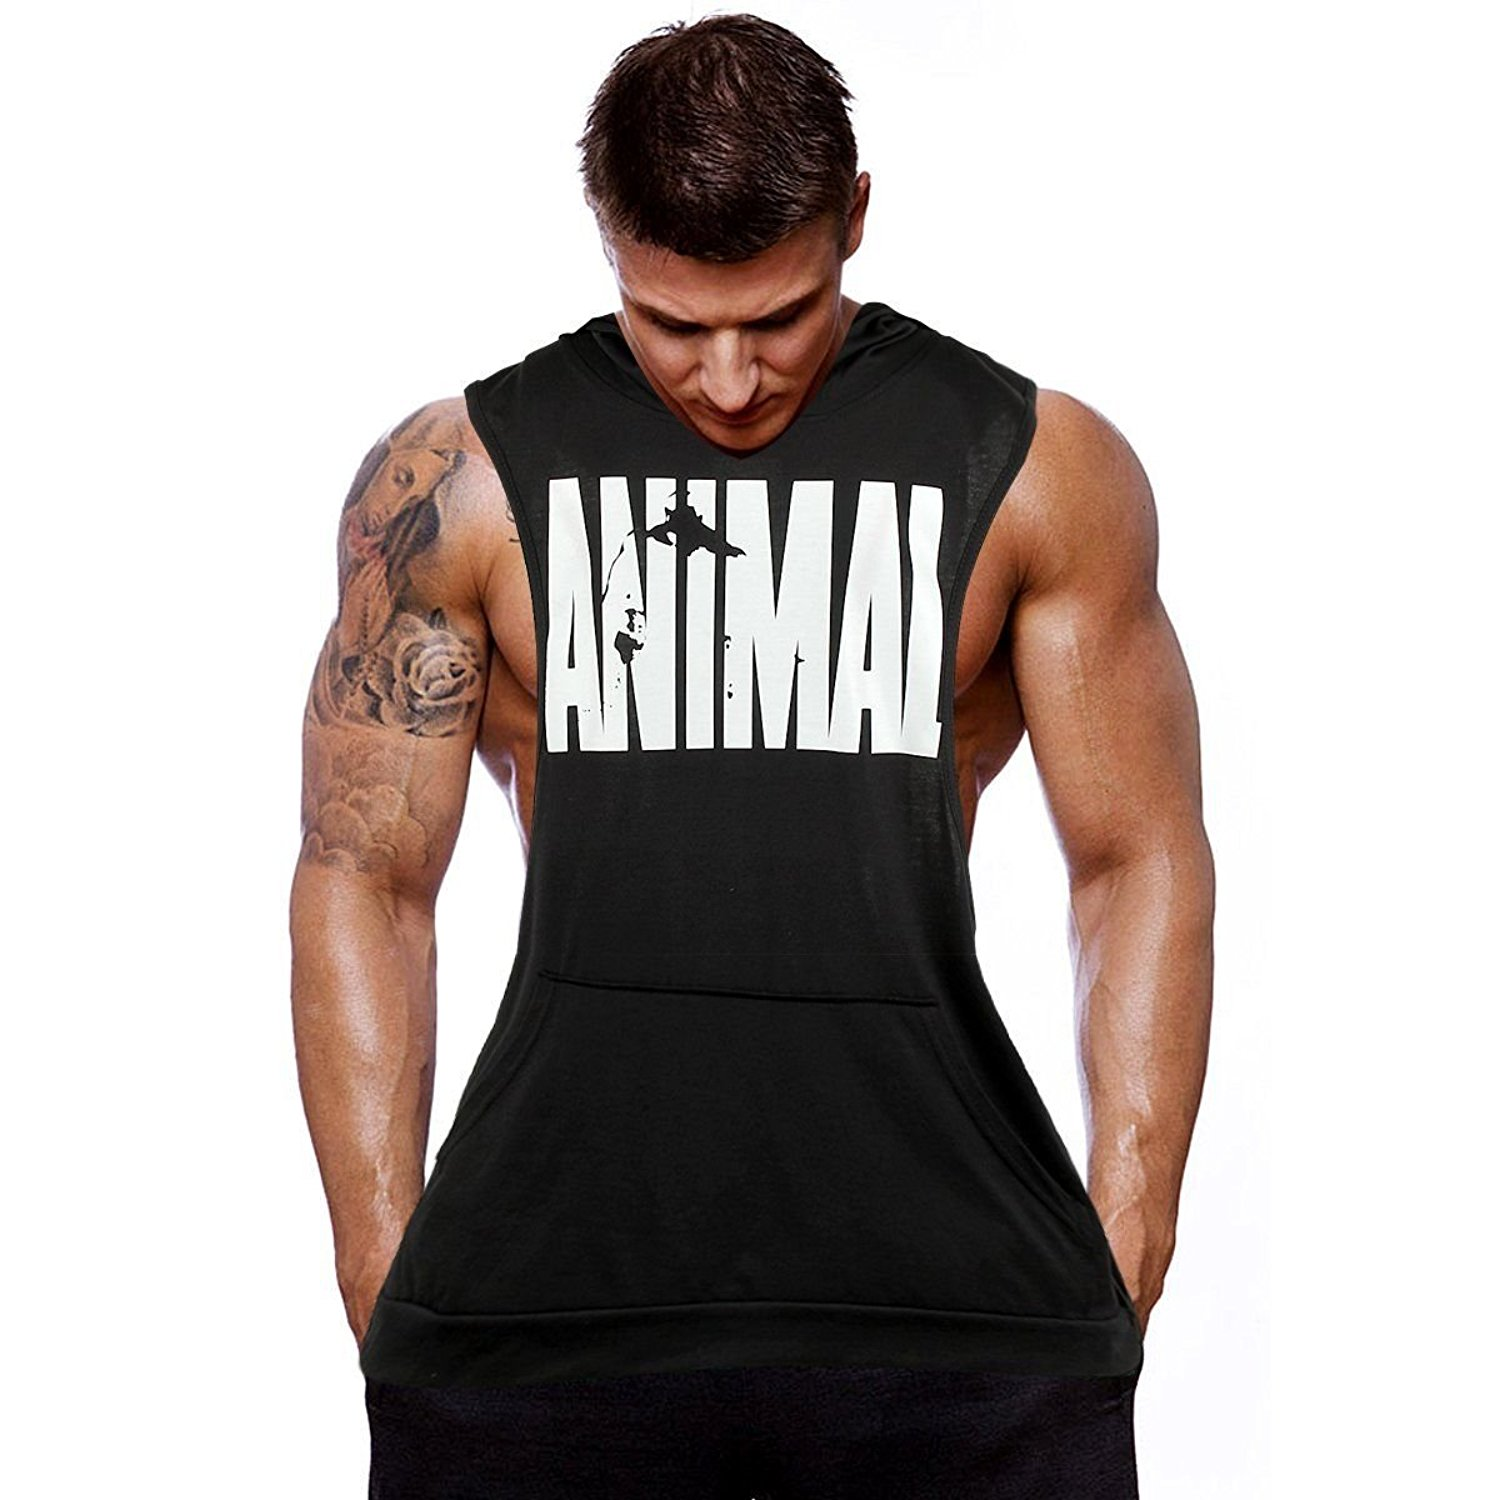 7689ec91142b5 Get Quotations · AA Mens Bodybuilding Stringer Black Clothing Stringer  Hoodie Tank Top Muscle Hooded Shirt XL